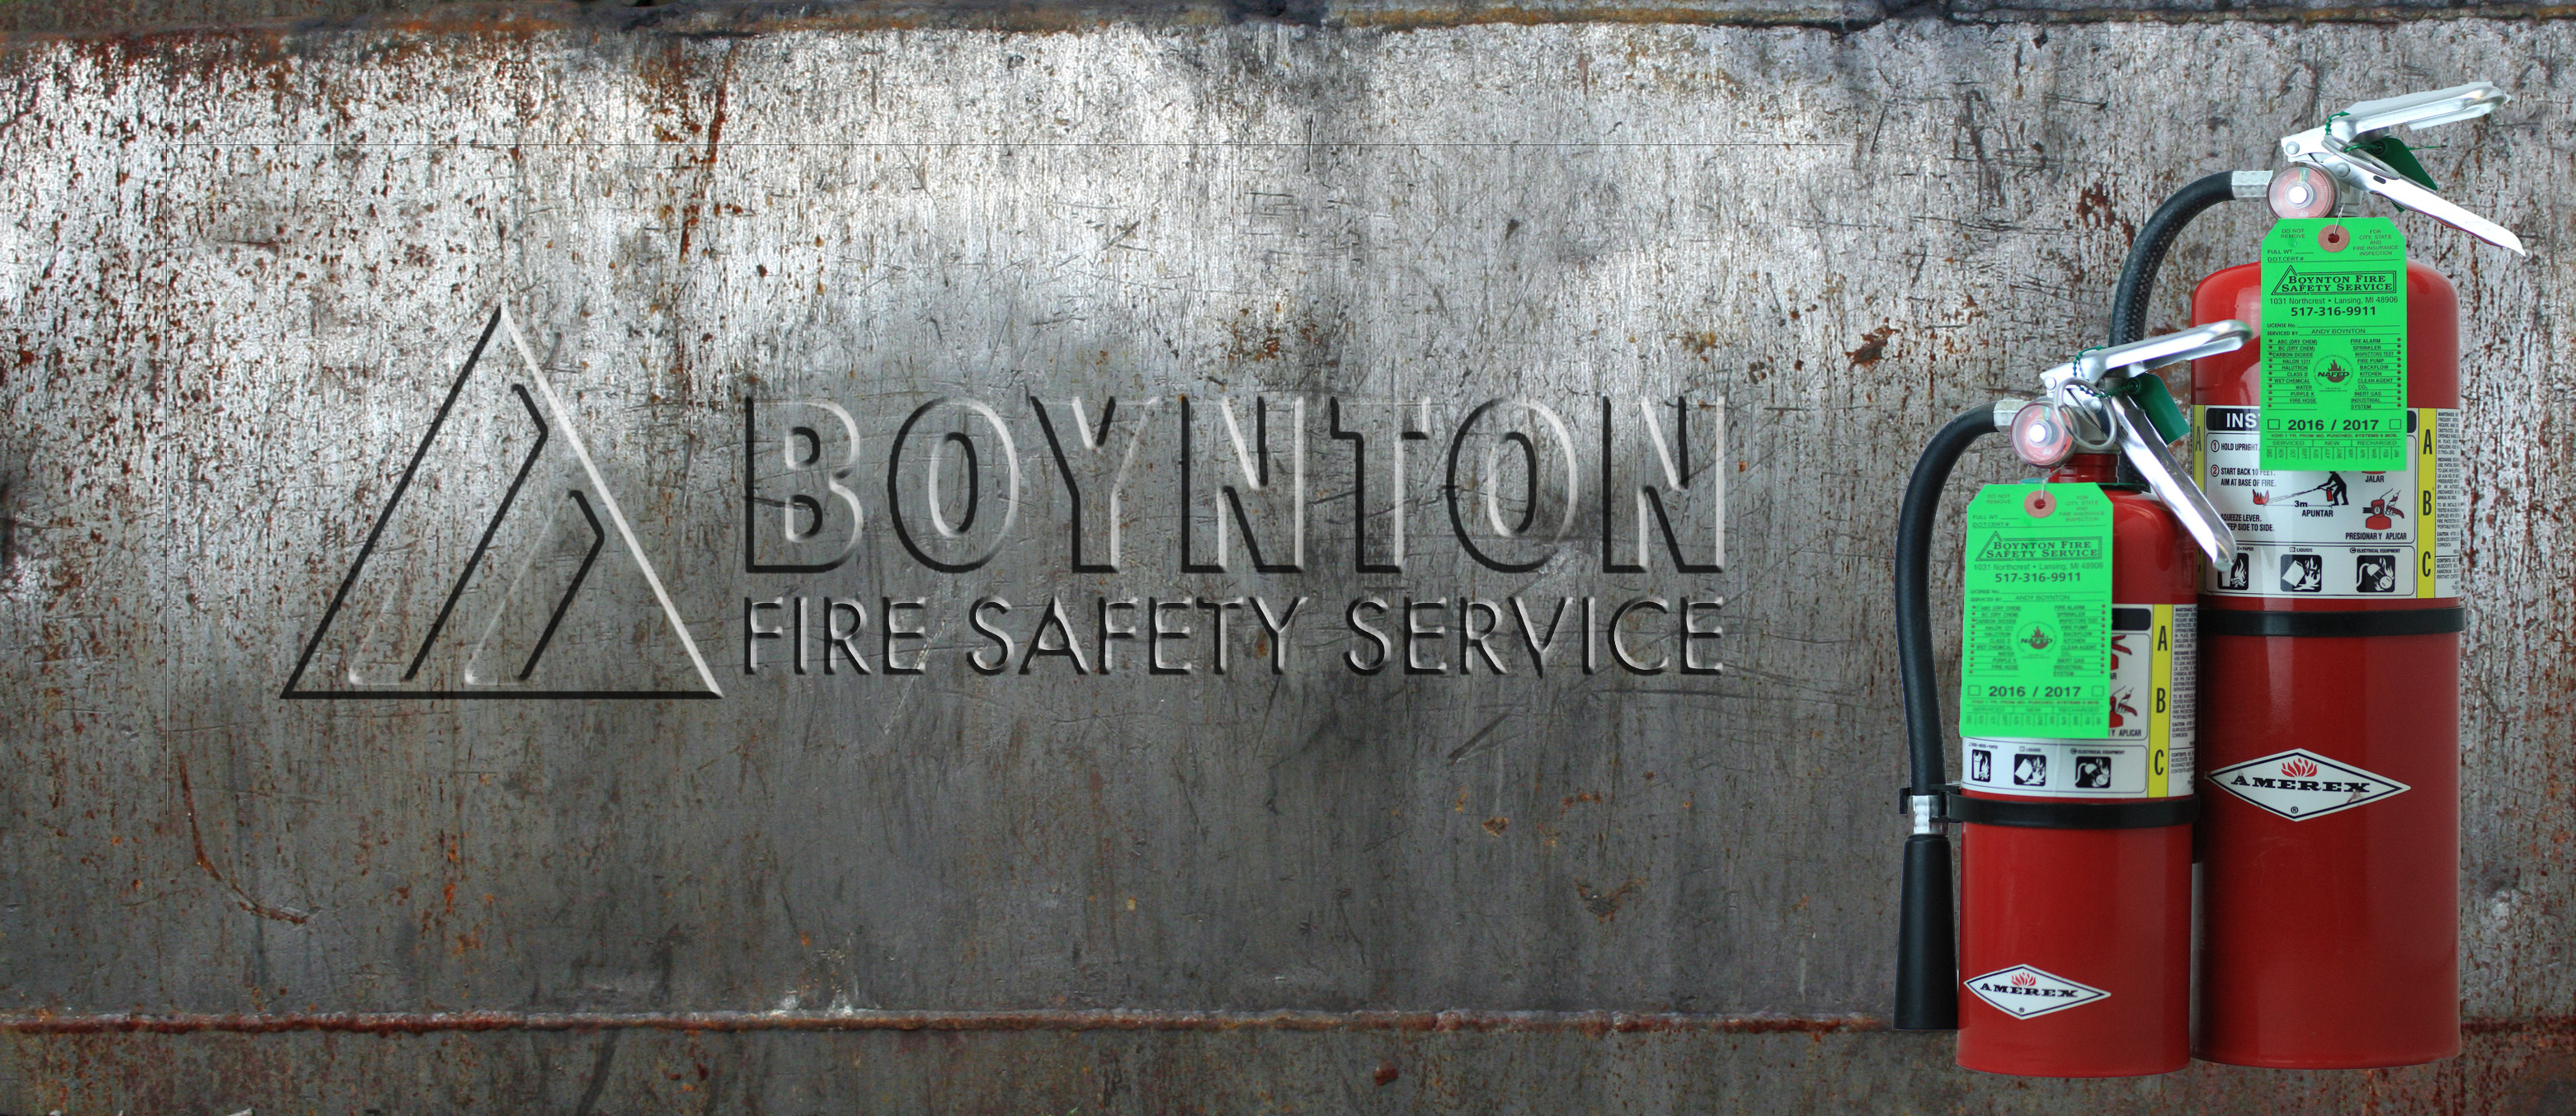 Home - Boynton Fire Safety Services